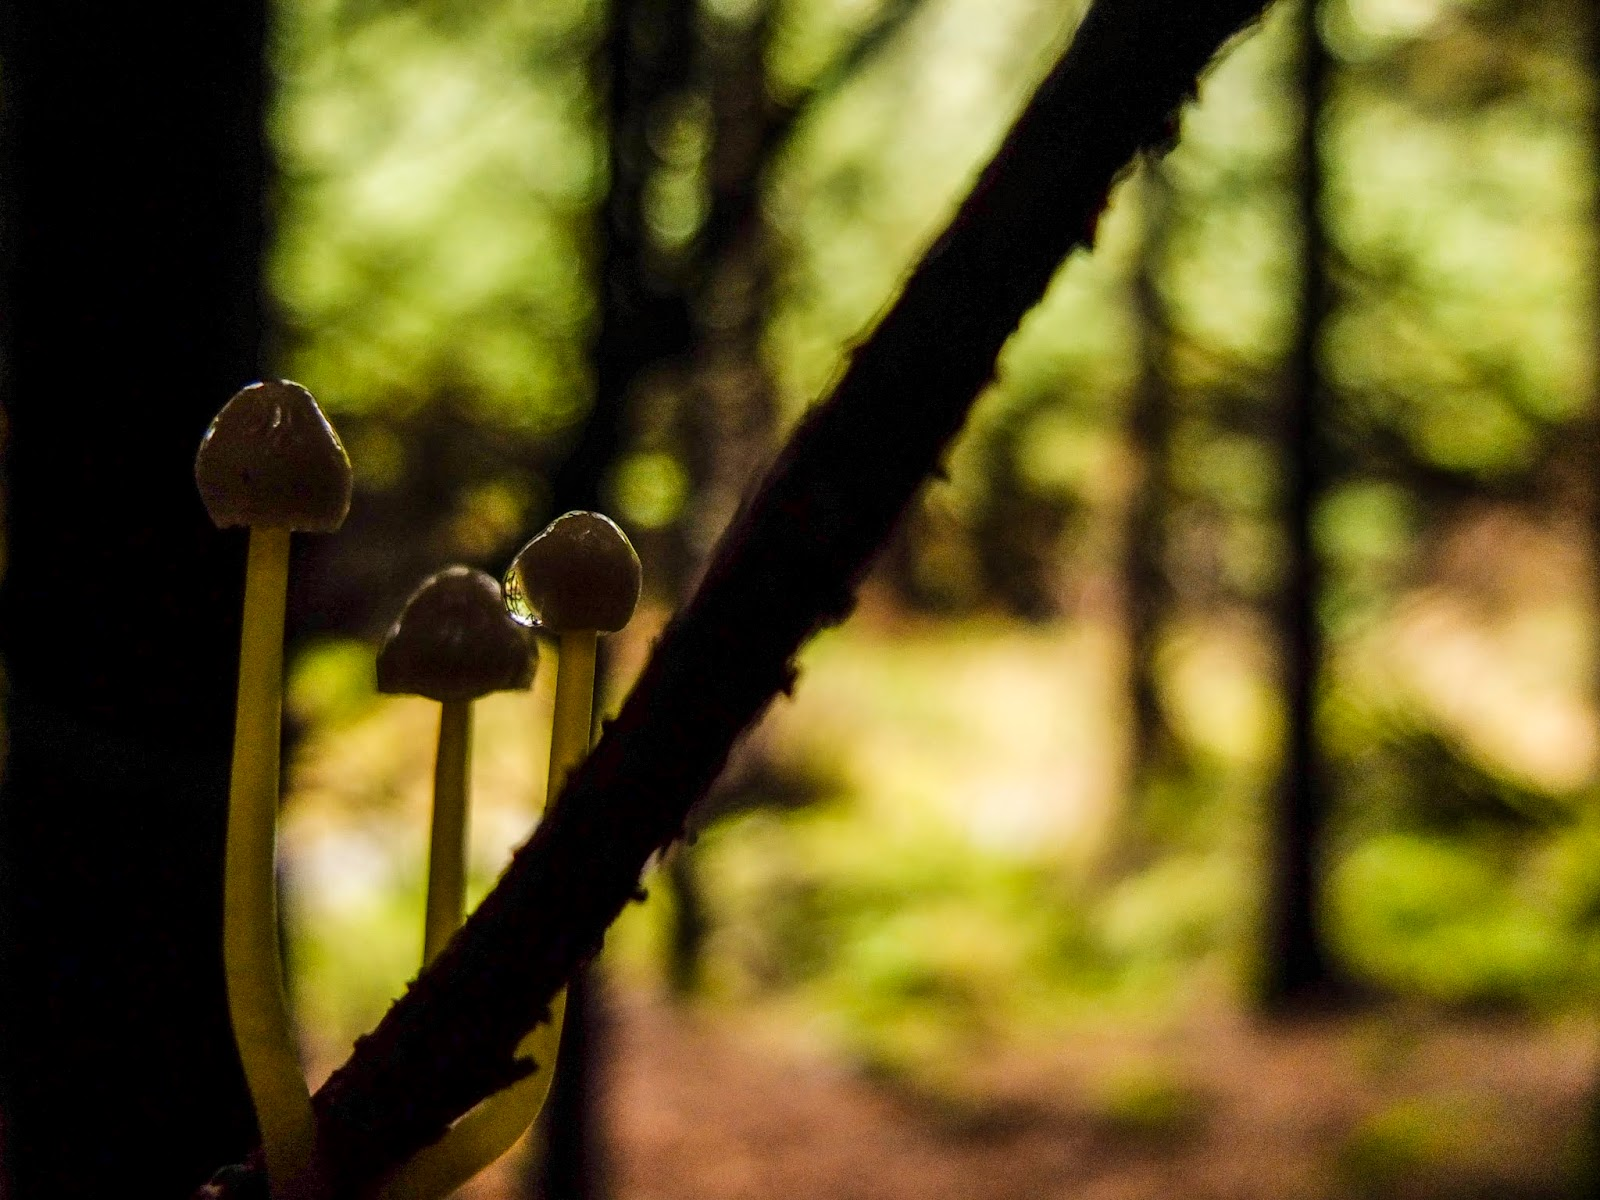 Tiny mushrooms growing on a pine tree branch inside a forest.